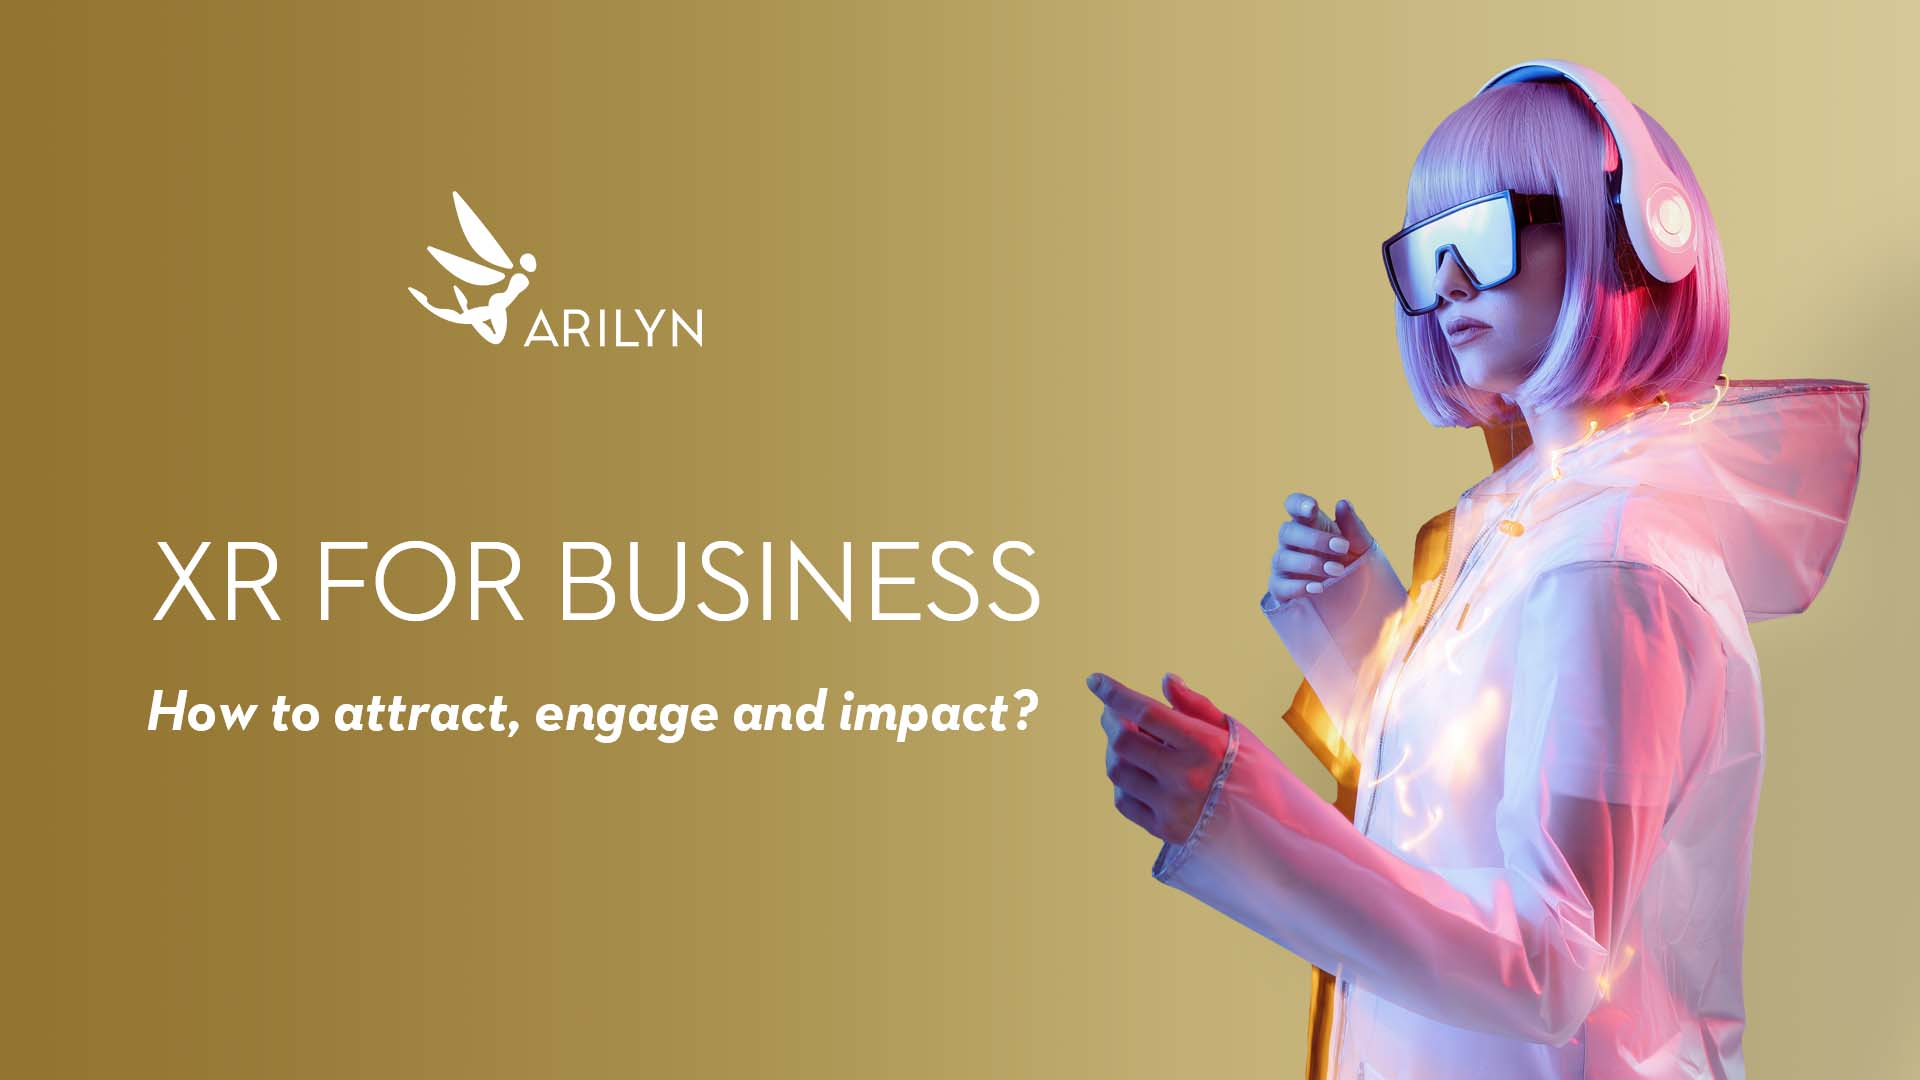 Extended reality for business - How to attract, engage, and impact?